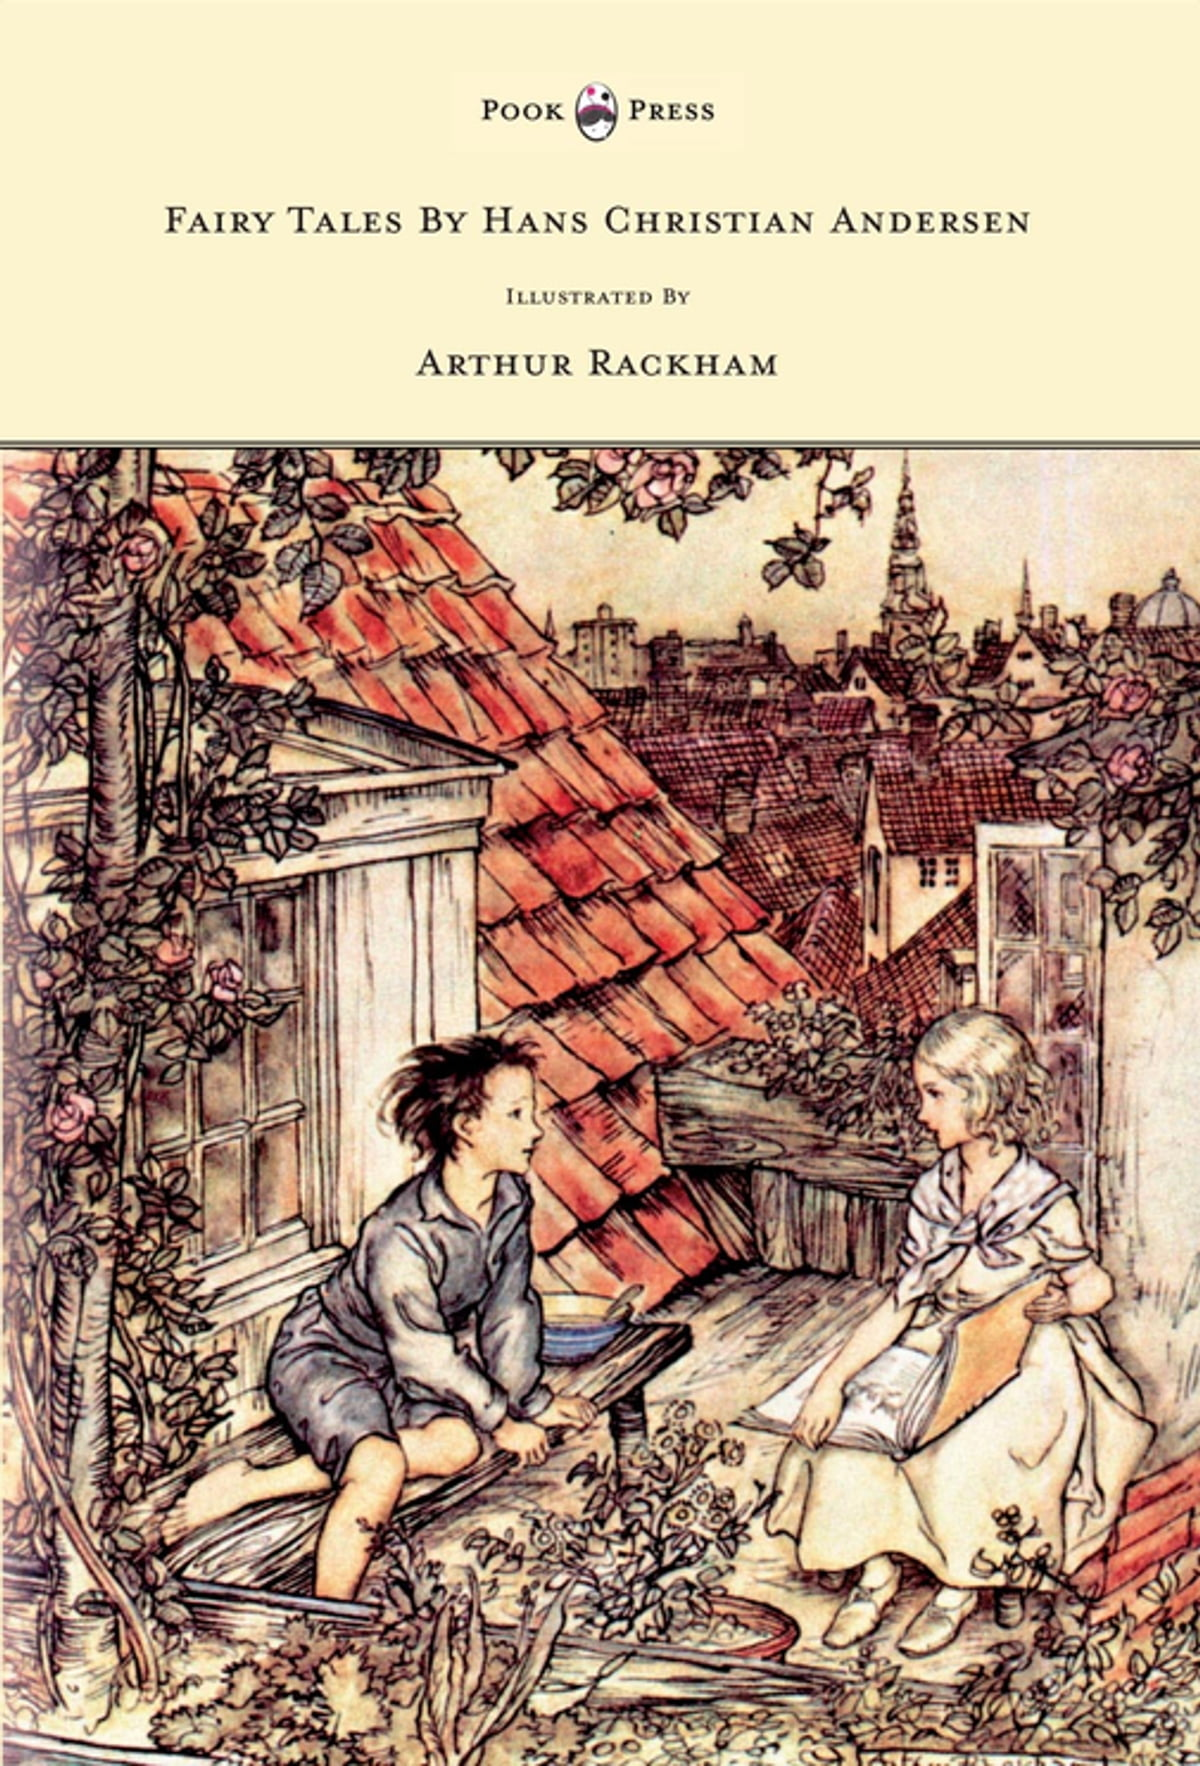 Image result for arthur rackham illustrations of fairytales